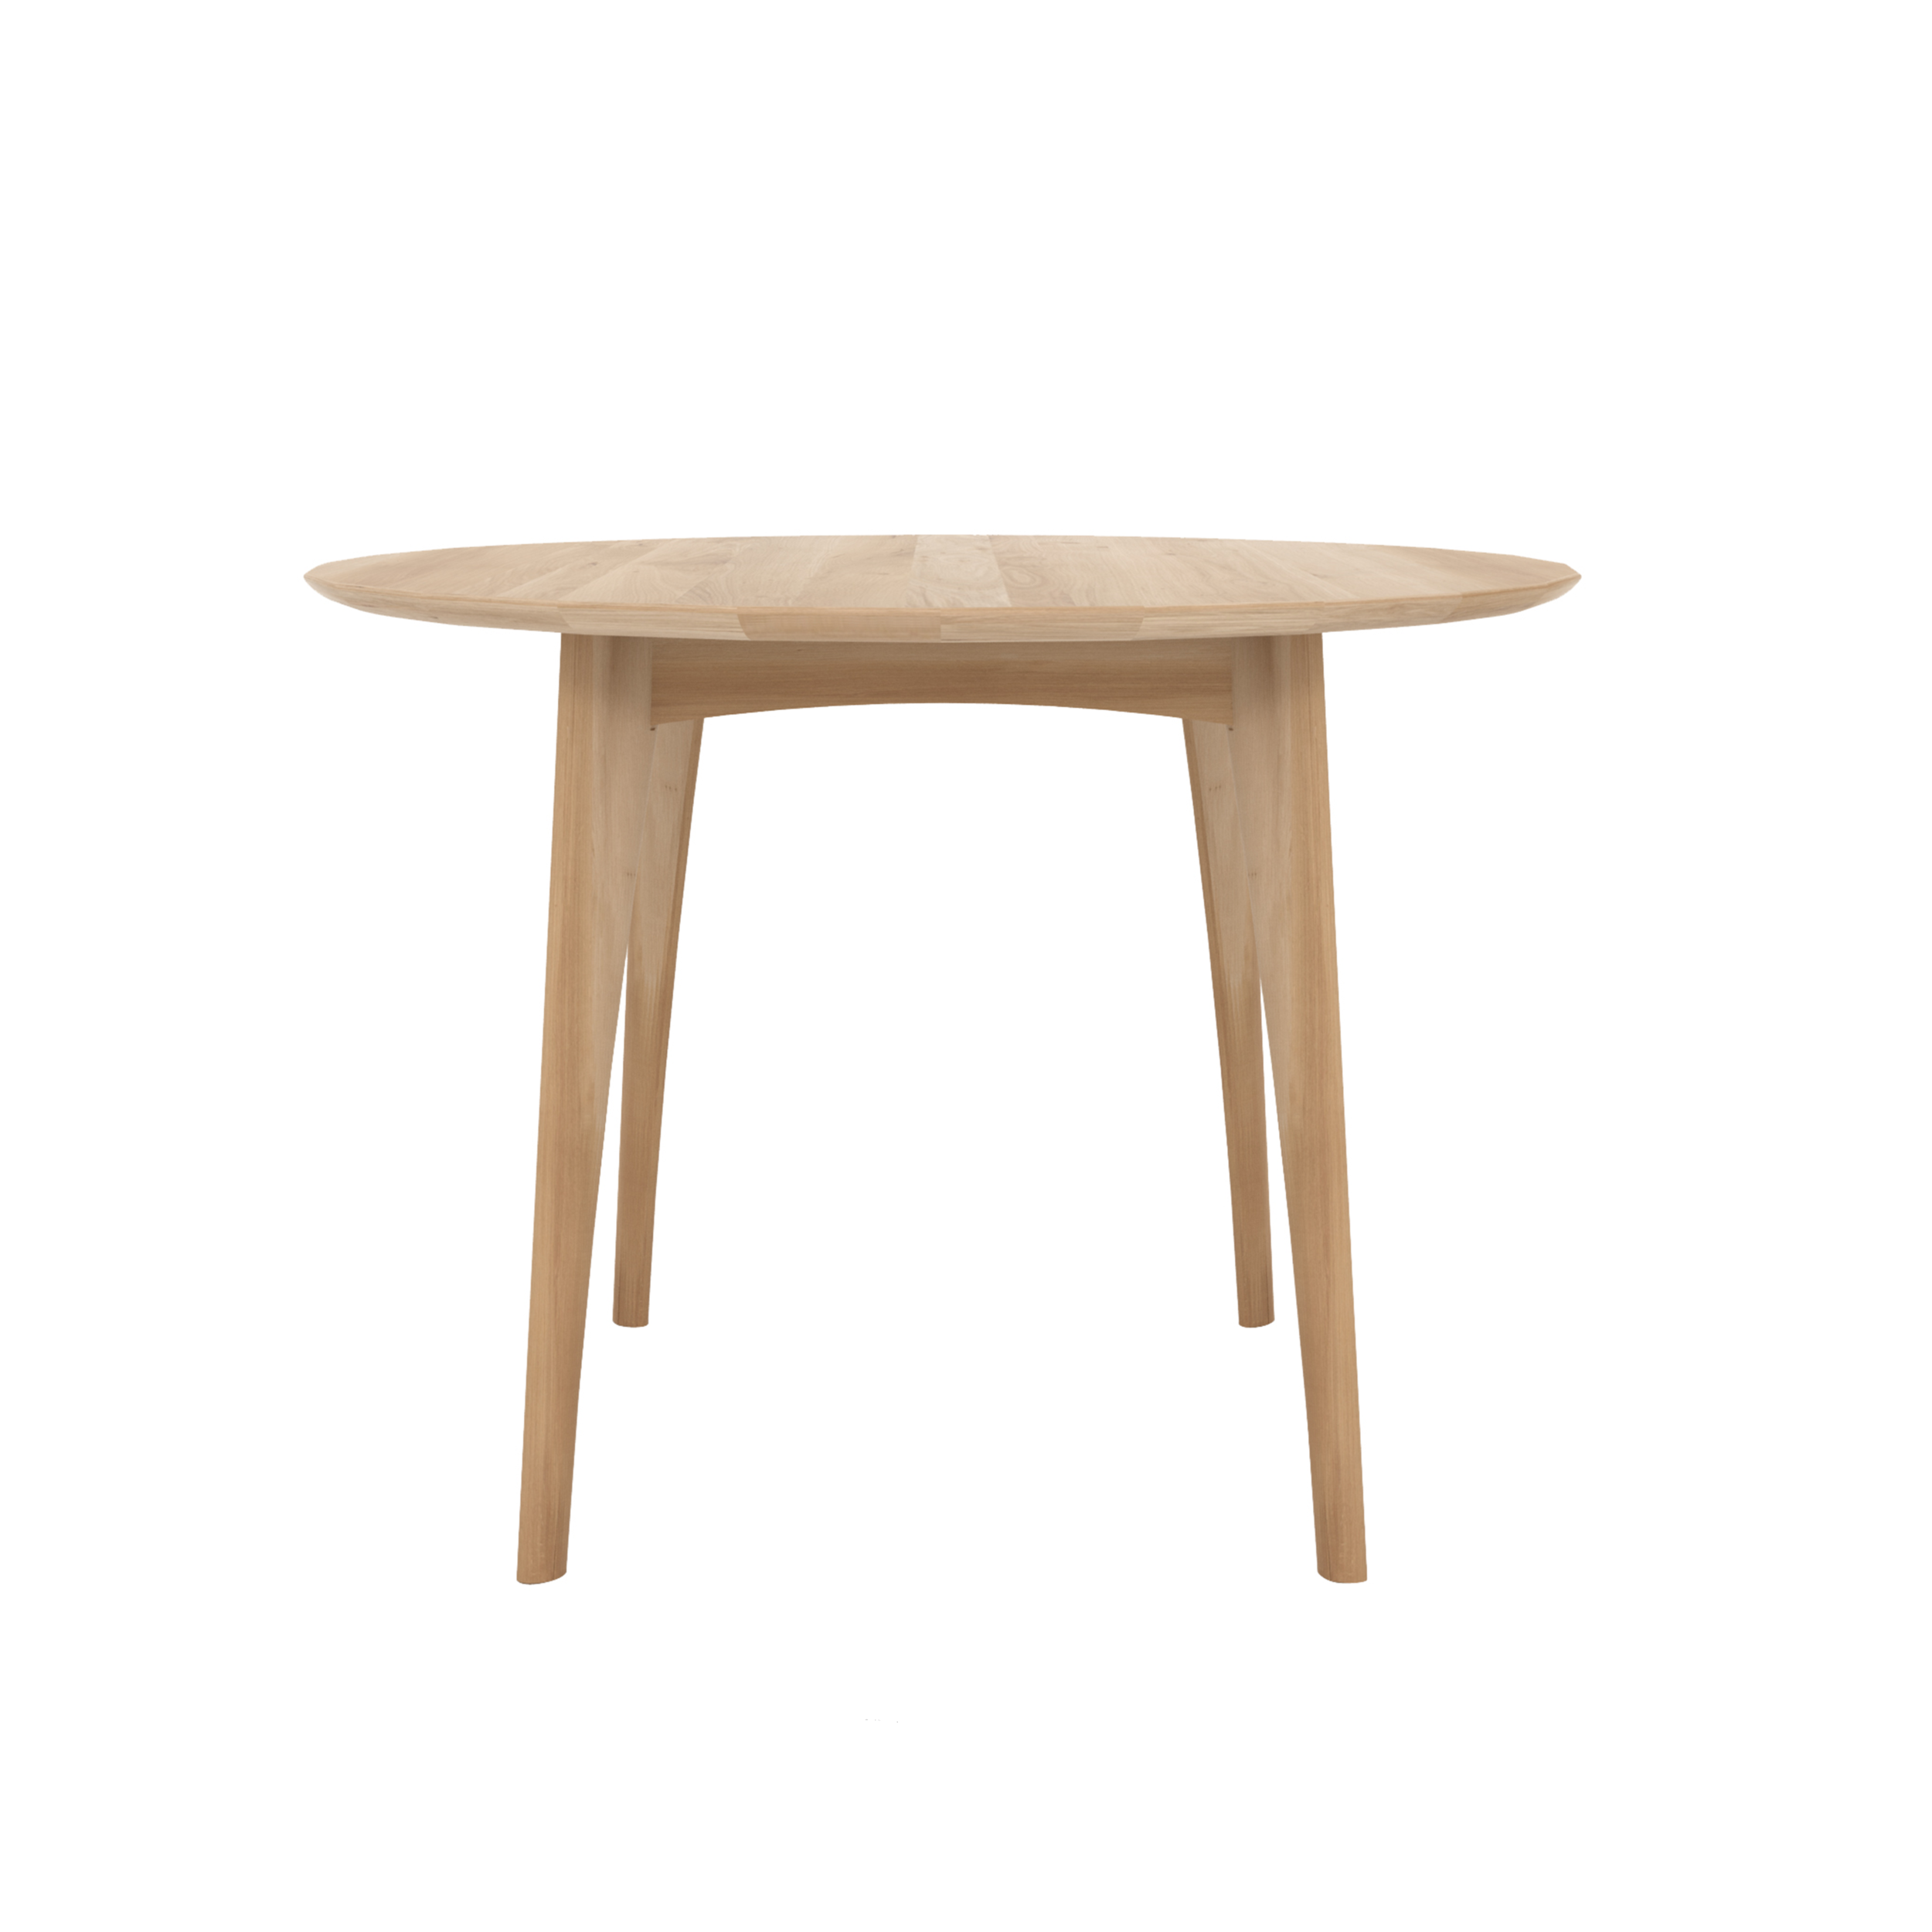 53030 Osso round table high - Oak.jpg.png